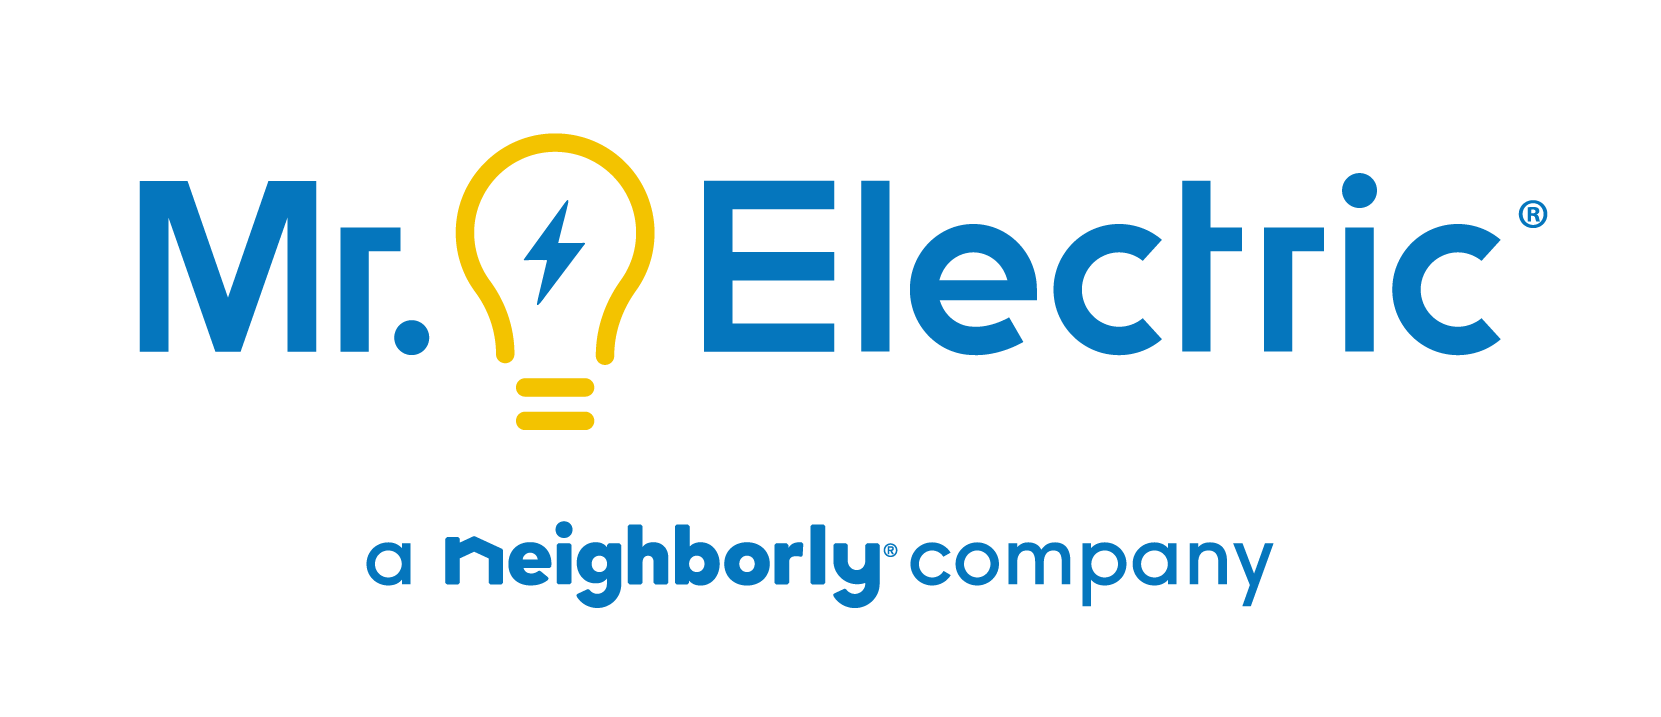 Mr. Electric of Waukesha